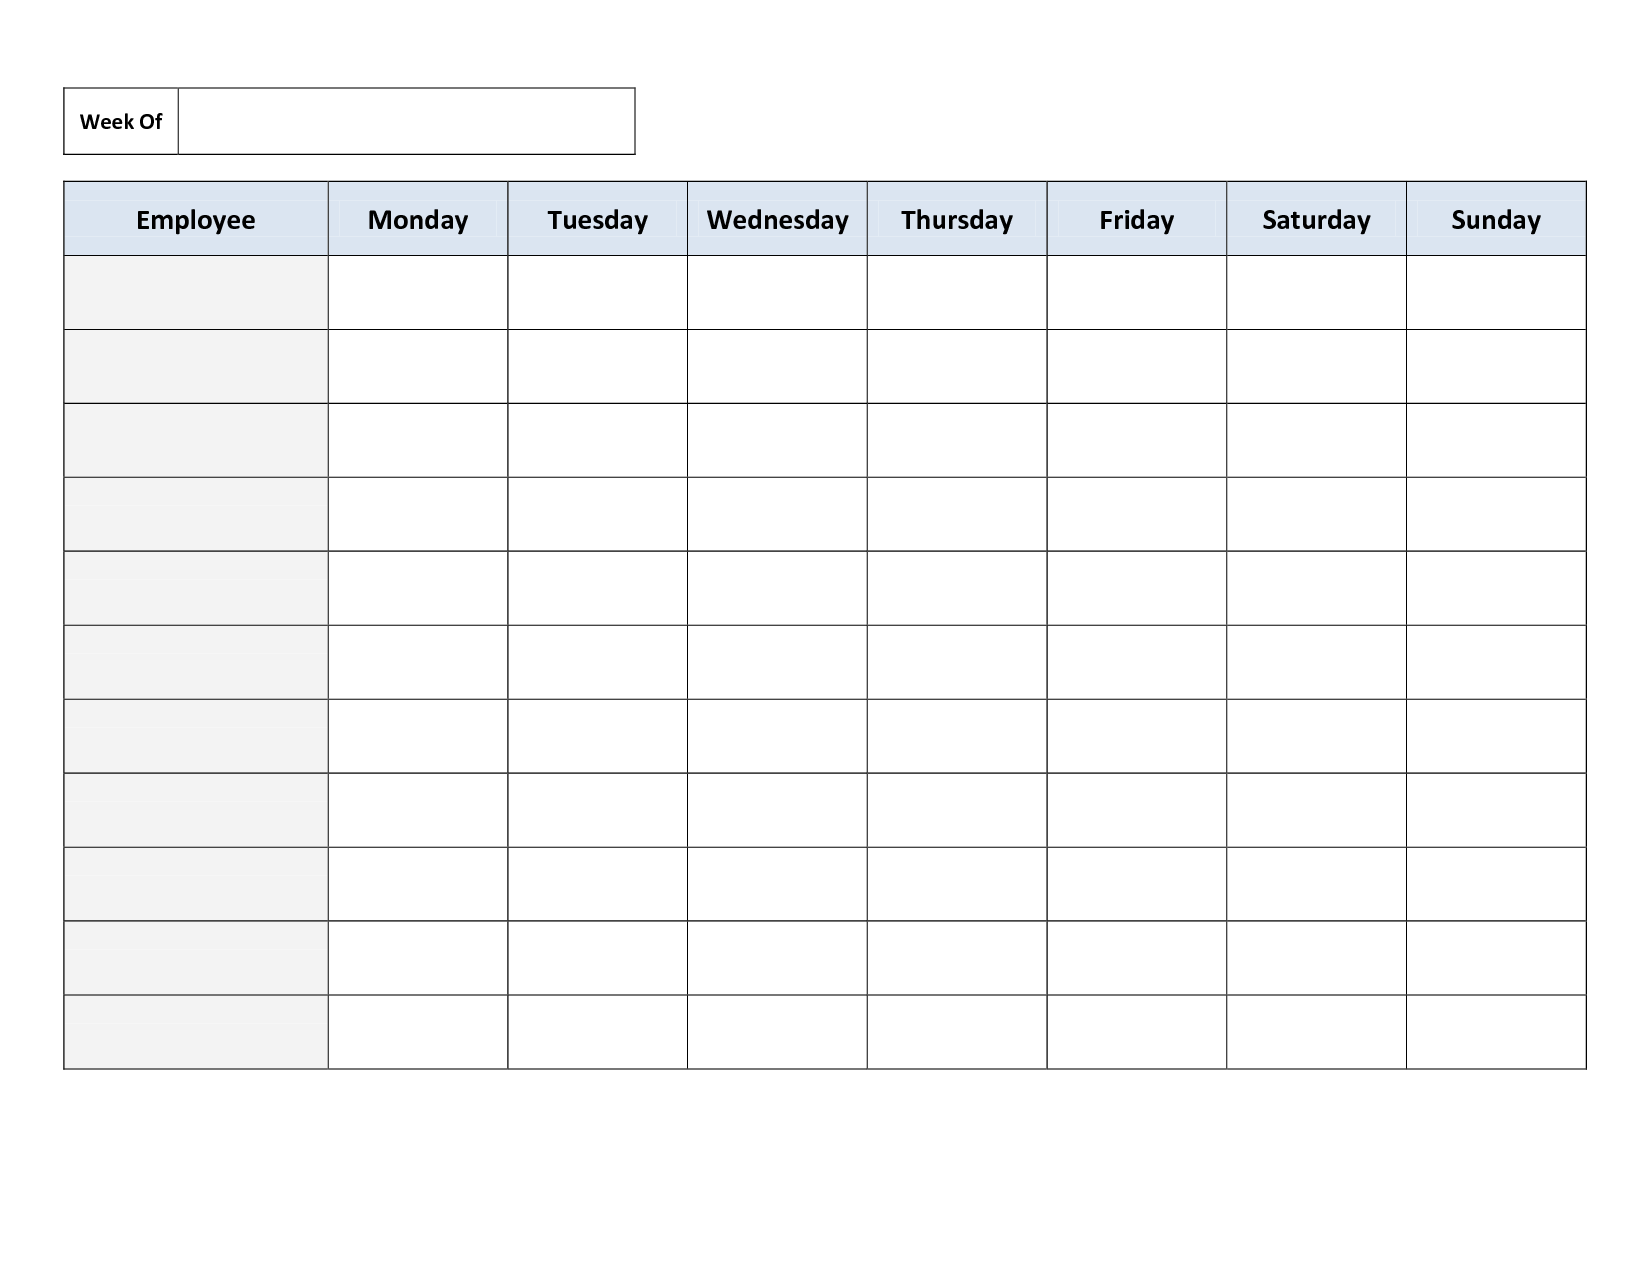 photograph regarding Weekly Schedule Template Printable titled Personnel Routine Template place of work template